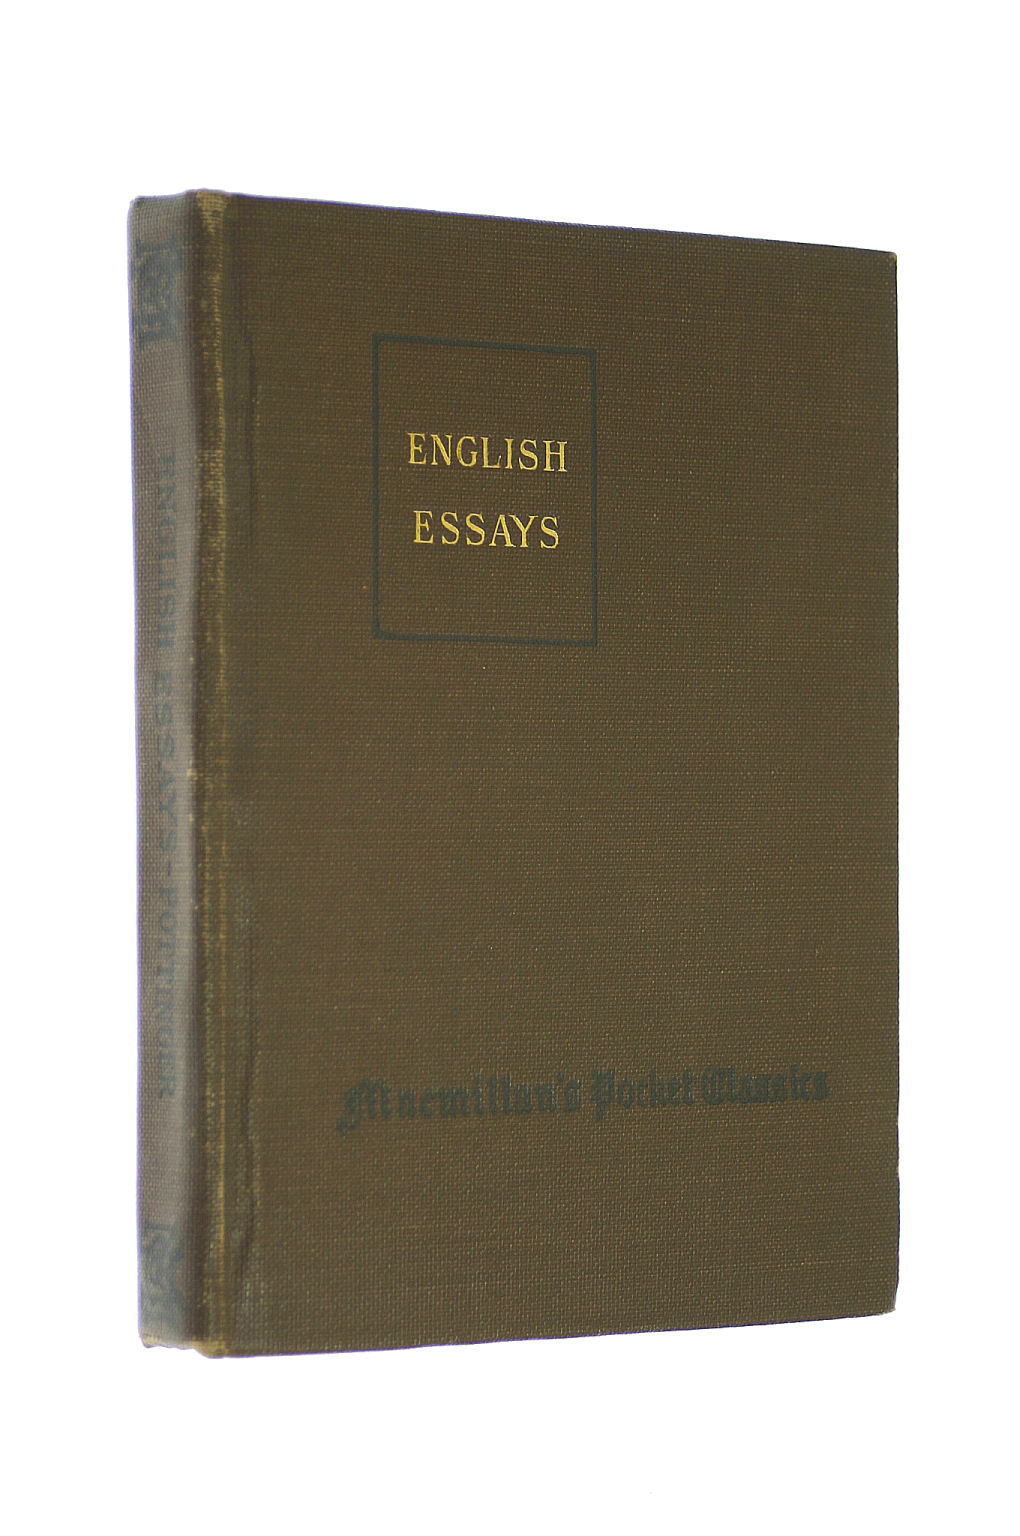 Image for English essays: An anthology of essays from Bacon to Lucas; ed. with introduction and notes (Macmillan pocket classics)